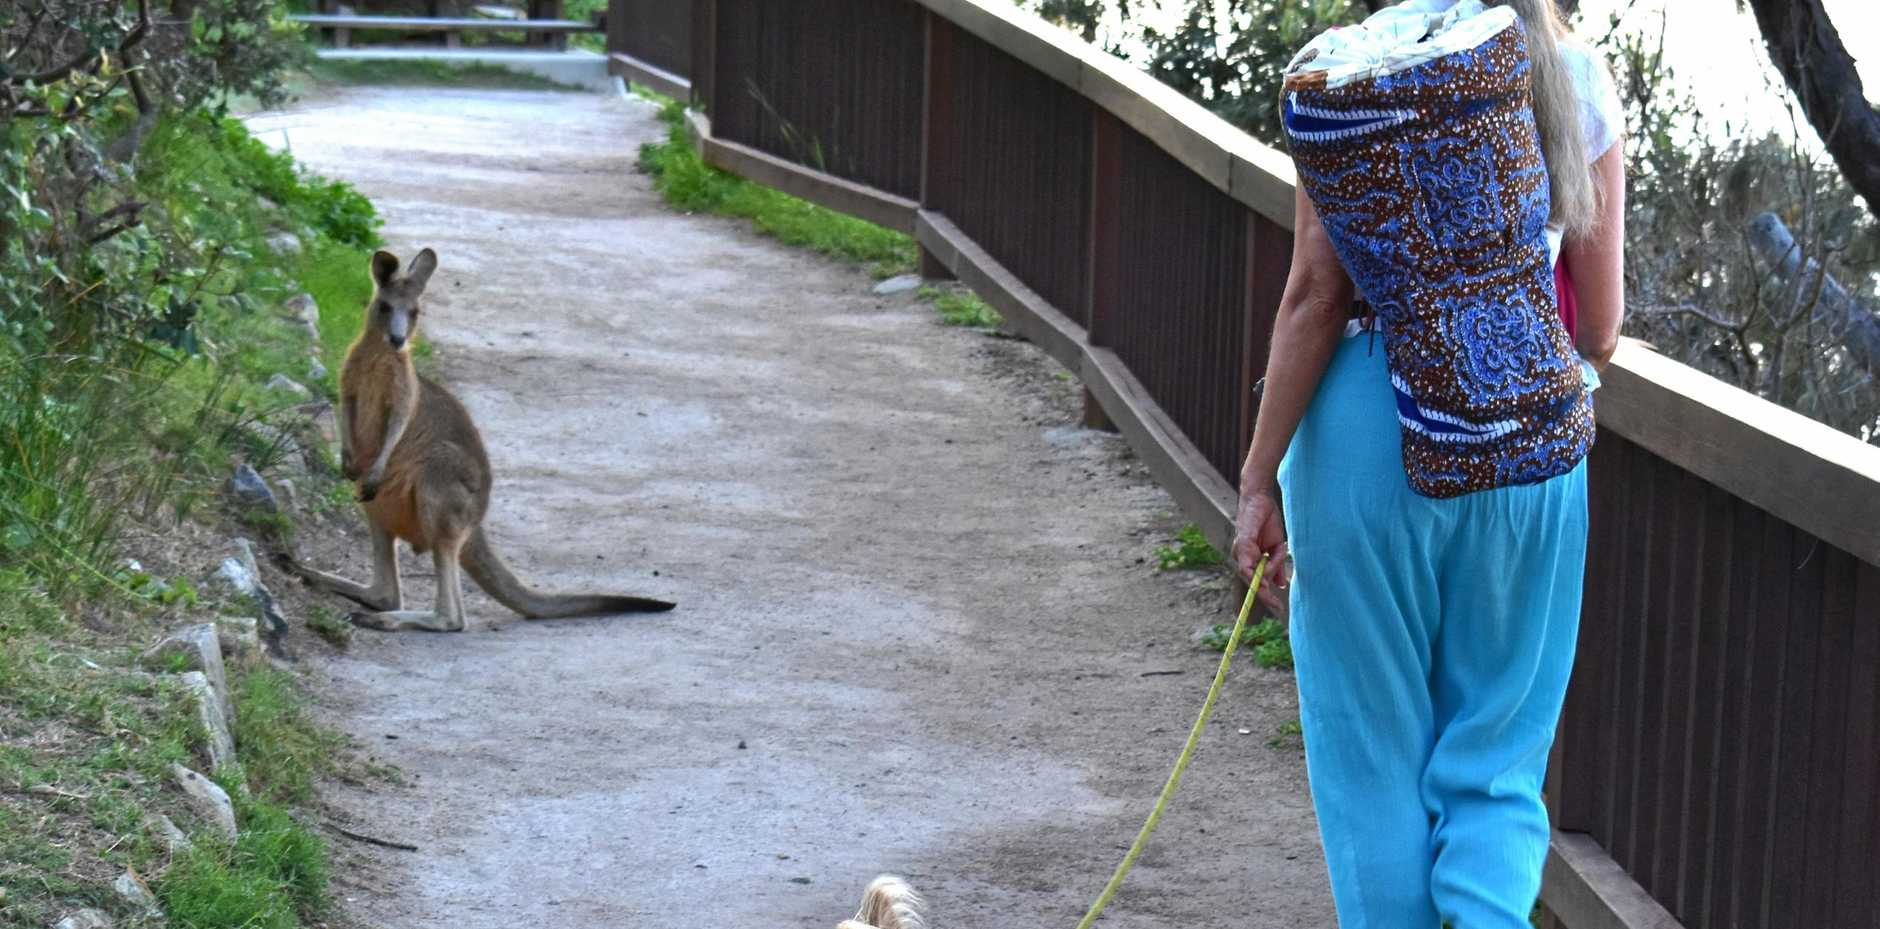 Cynthia Hoogstraten takes a stroll with her pooch and meets a wild friend.